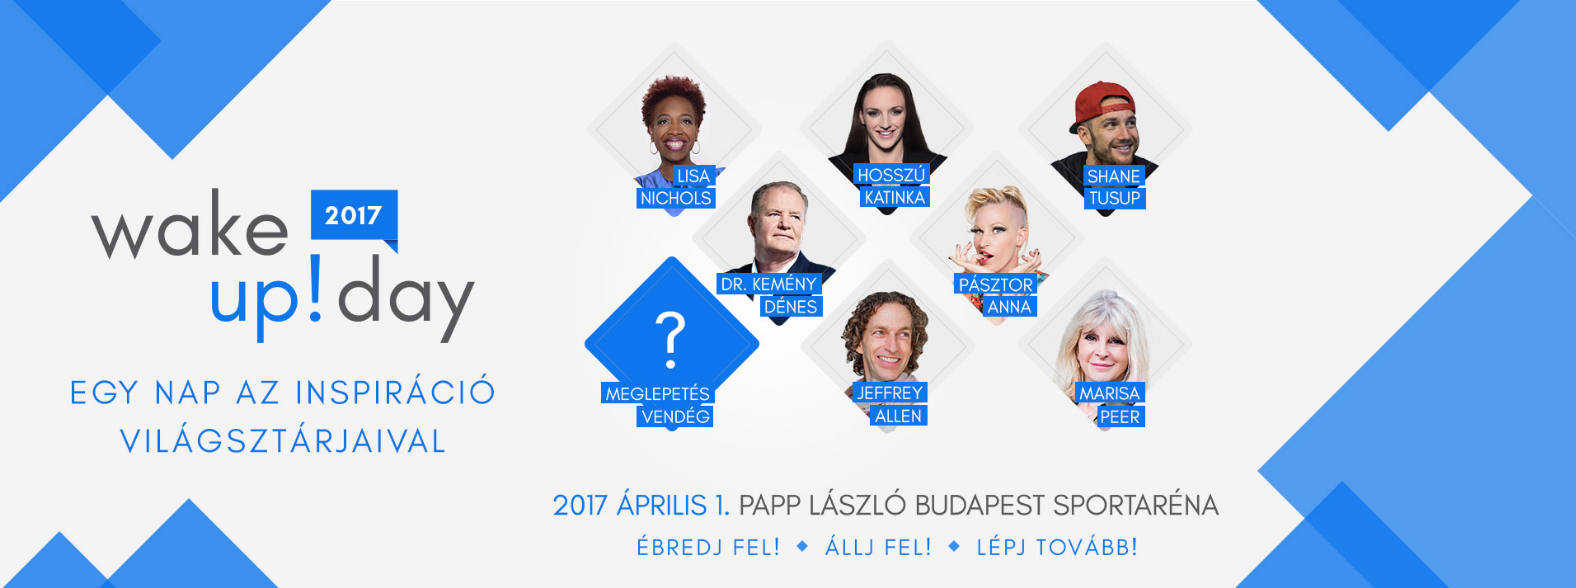 Wake-Up! Day With Lisa Nichols, Katinka Hosszú, Shane Tusup & More, Budapest, 1 April